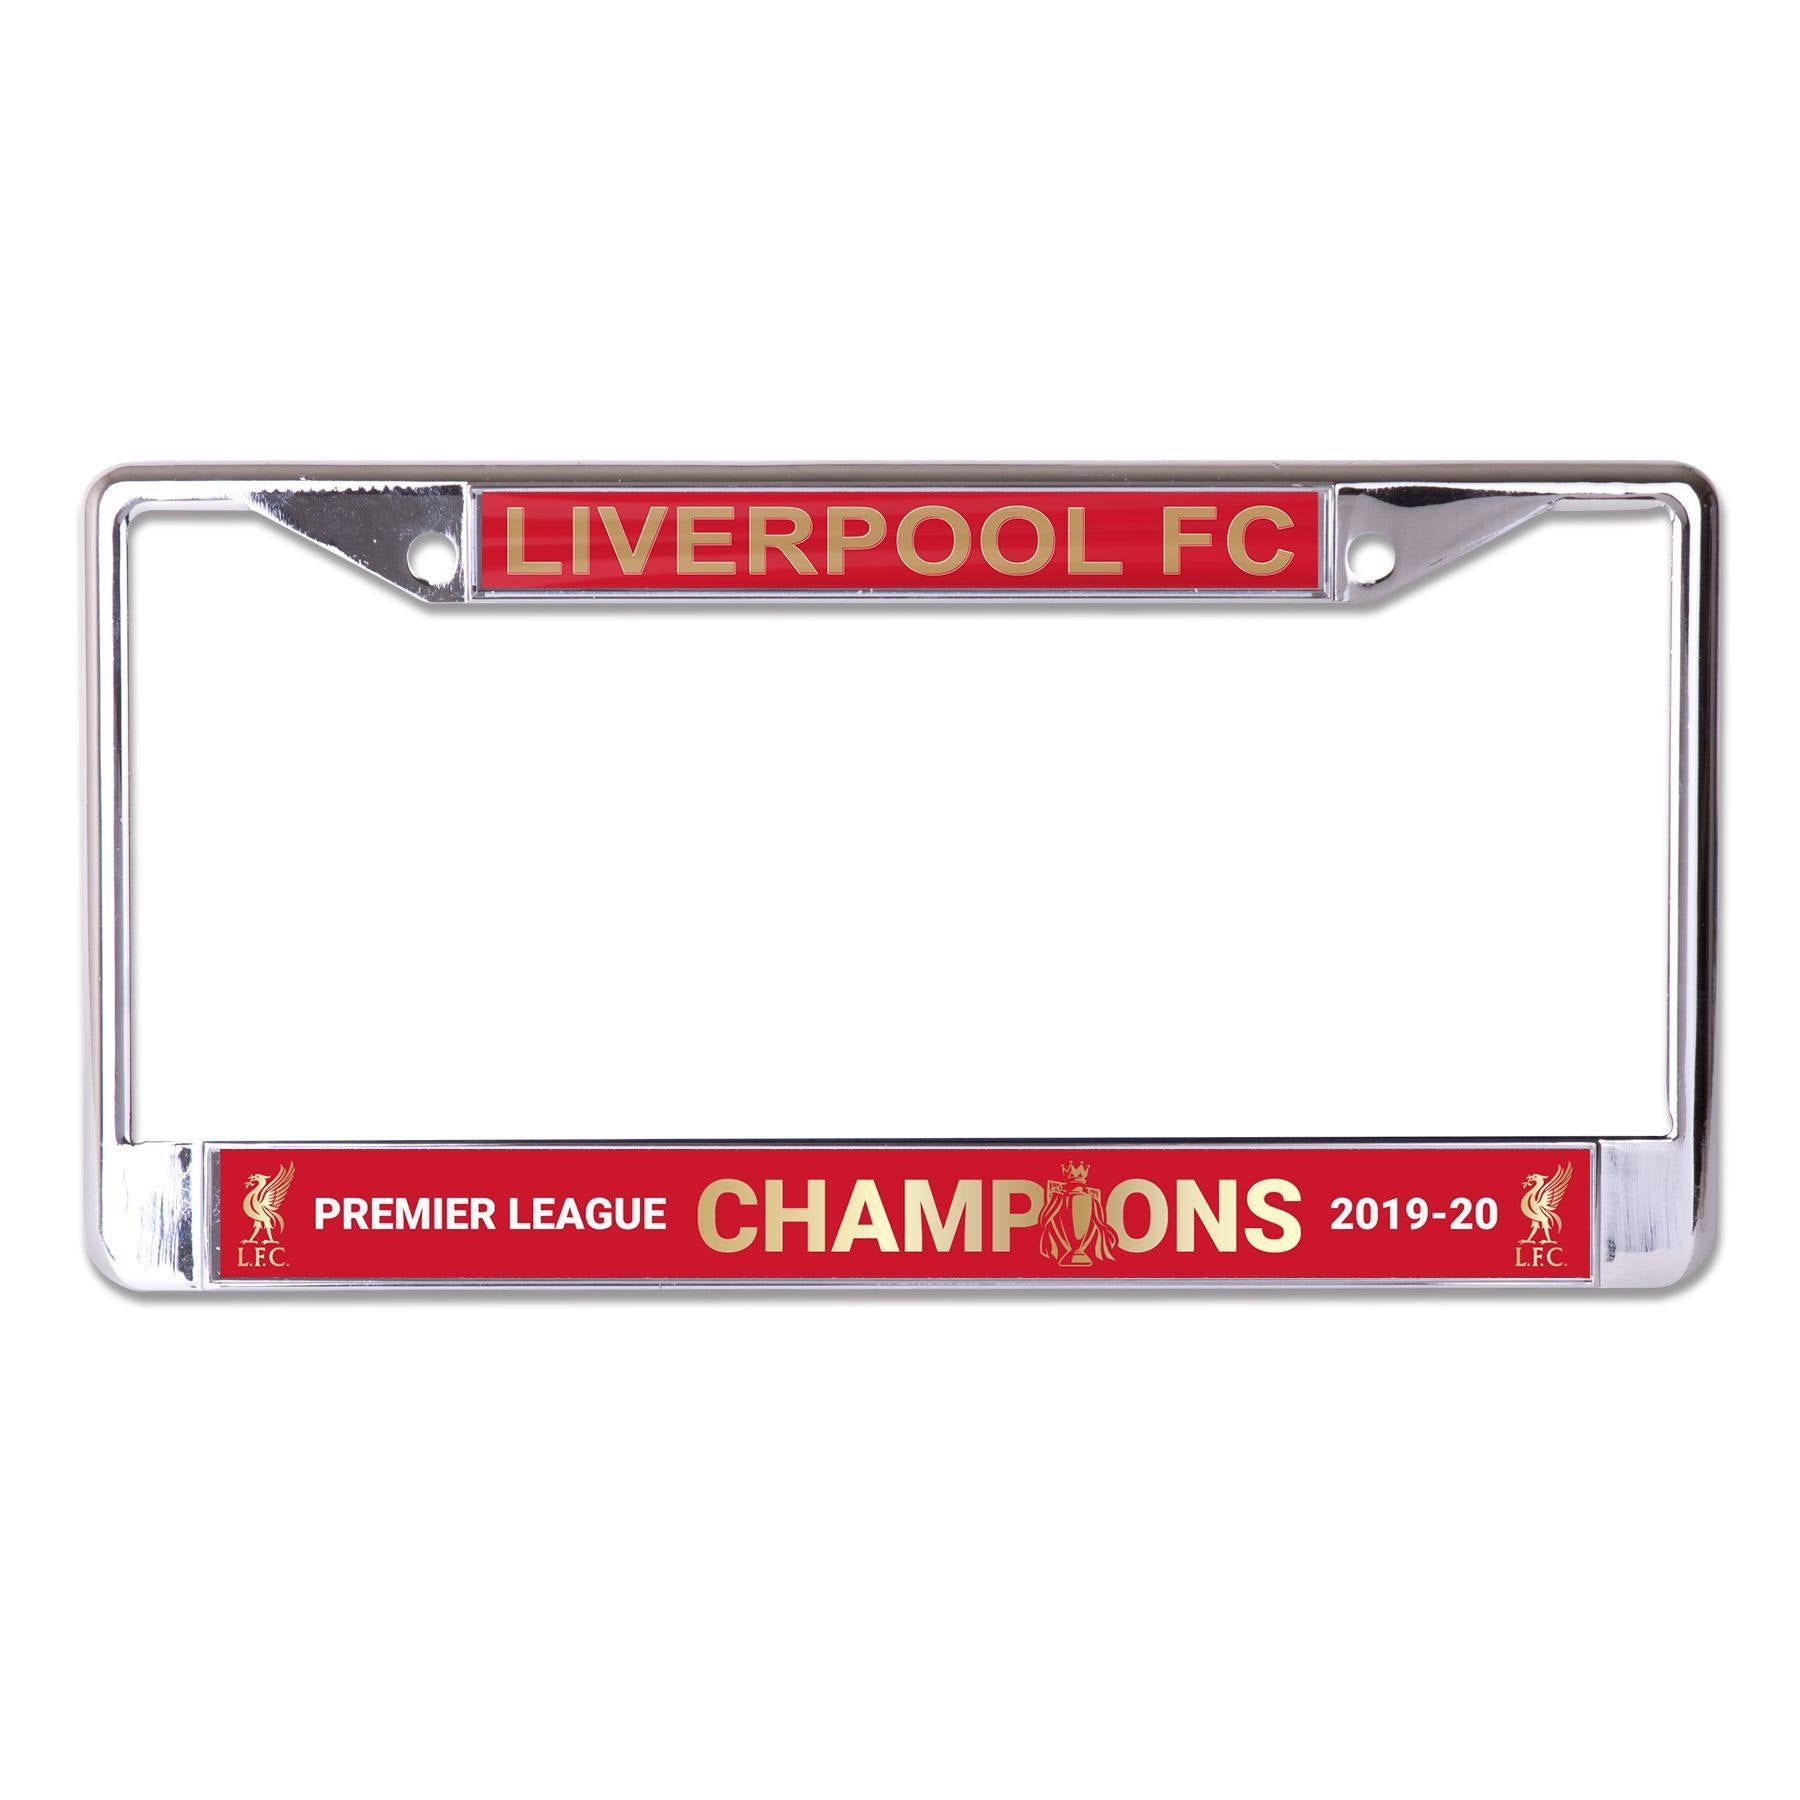 Liverpool FC Inlaid Premier League Champions License Plate Frame